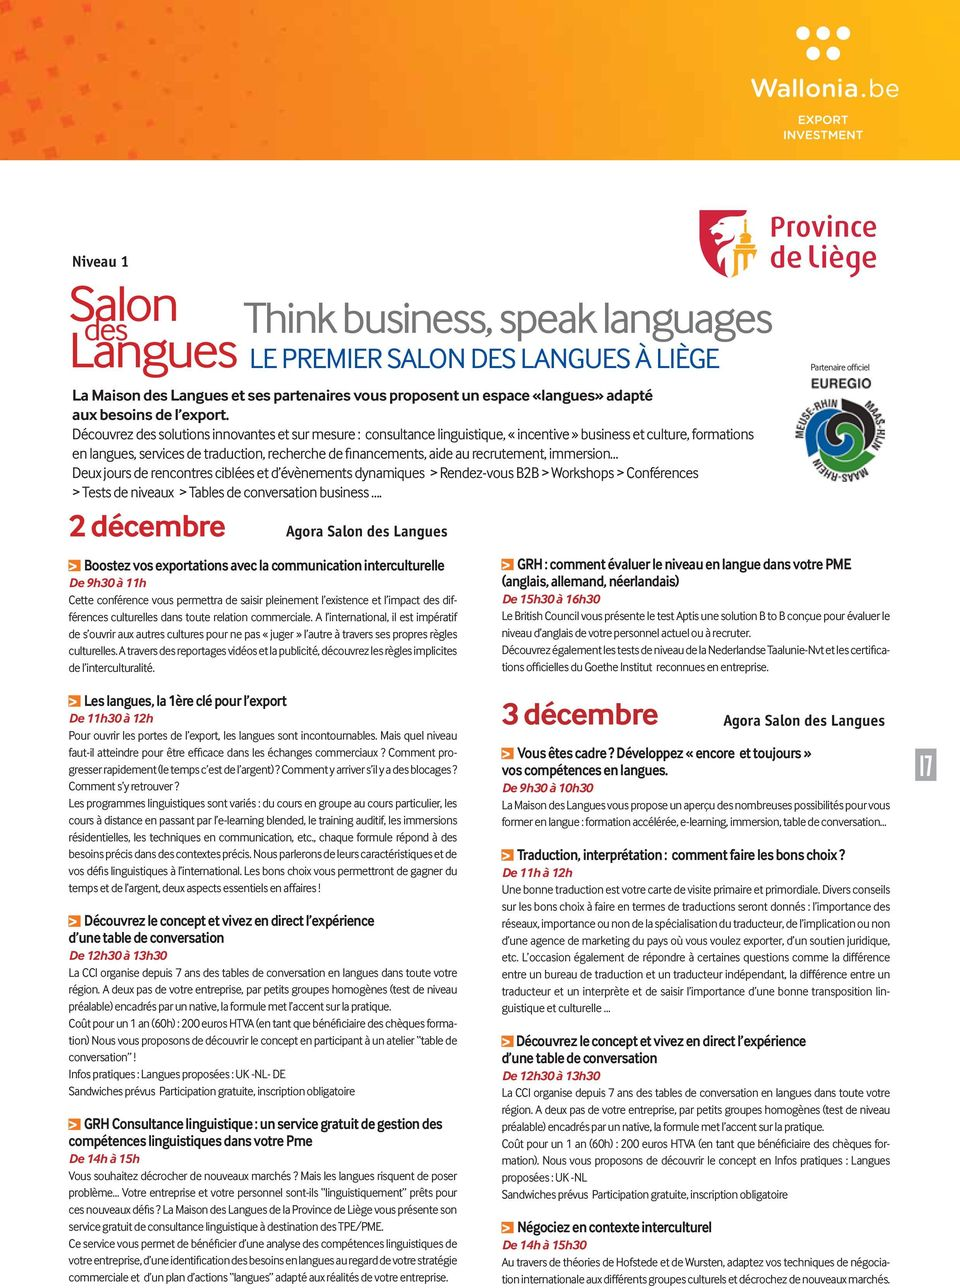 Découvrez des solutions innovantes et sur mesure : consultance linguistique, «incentive» business et culture, formations en langues, services de traduction, recherche de financements, aide au